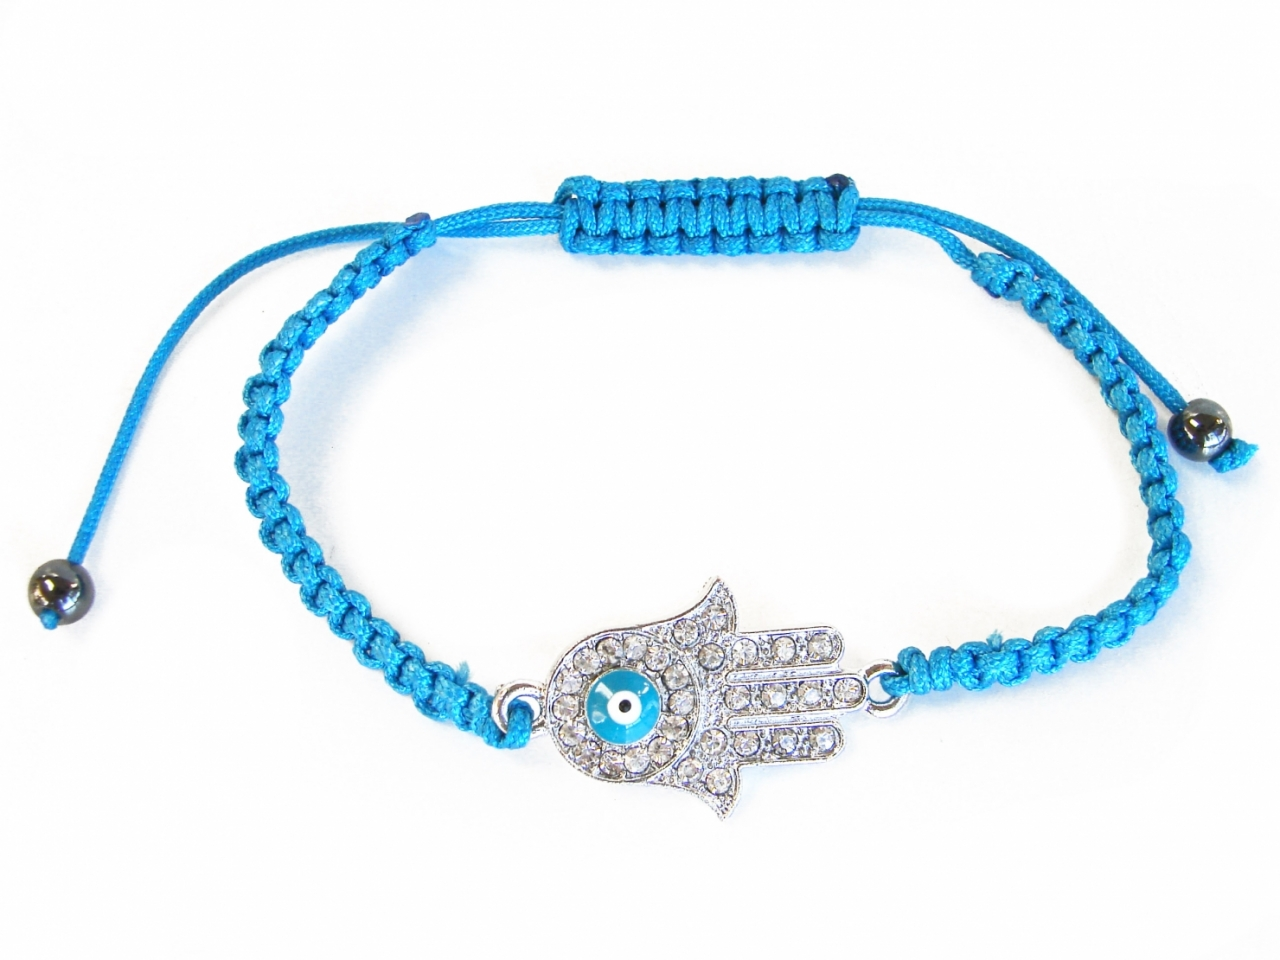 Jeweled Blue Hamsa Hand Bracelet